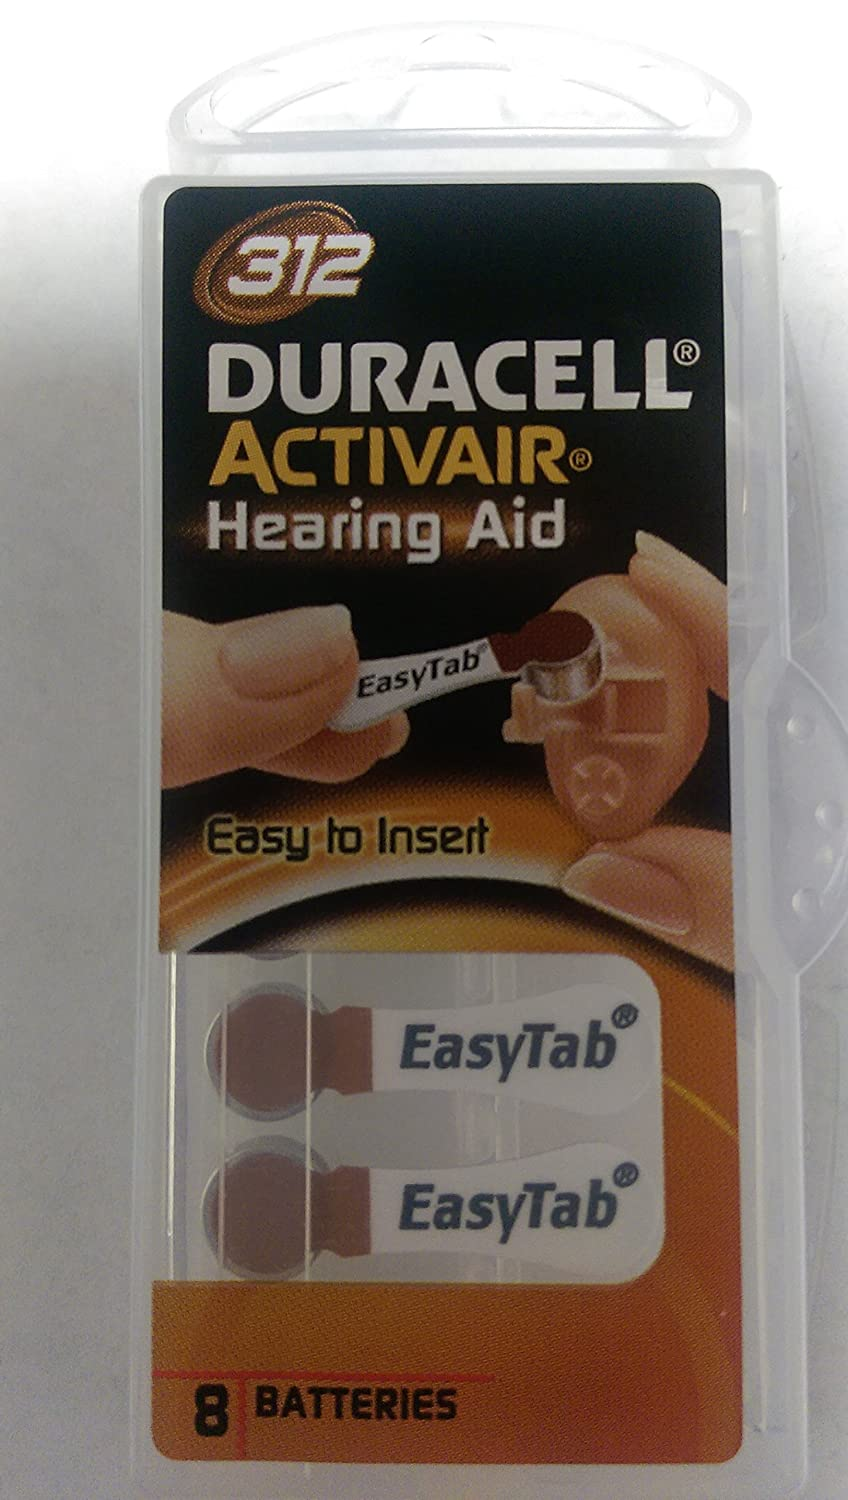 Duracell Easy tab Hearing Aid Size 312 - 16ct